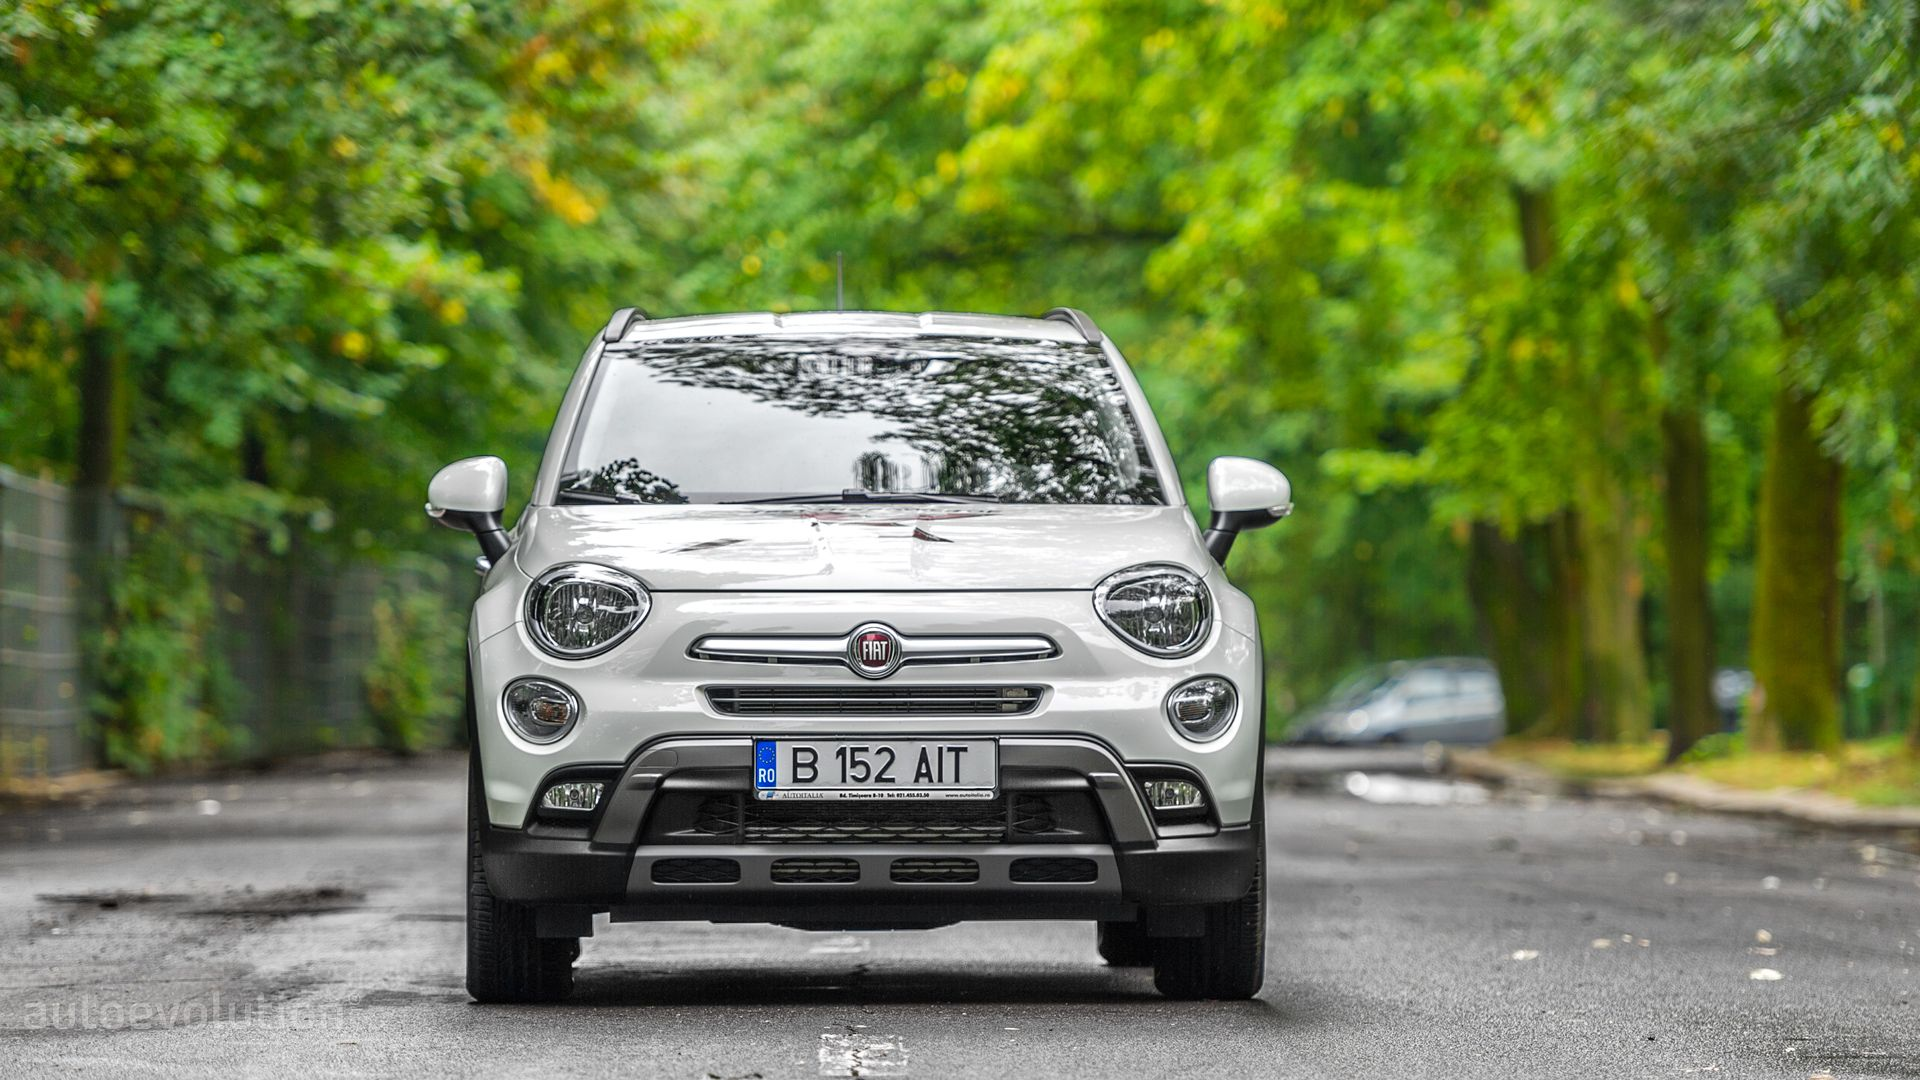 2016 Fiat 500x 20 Multijet Ii 140 Hp Tested No Paternity Test Jeep Renegade Vs 30 Photos 2019